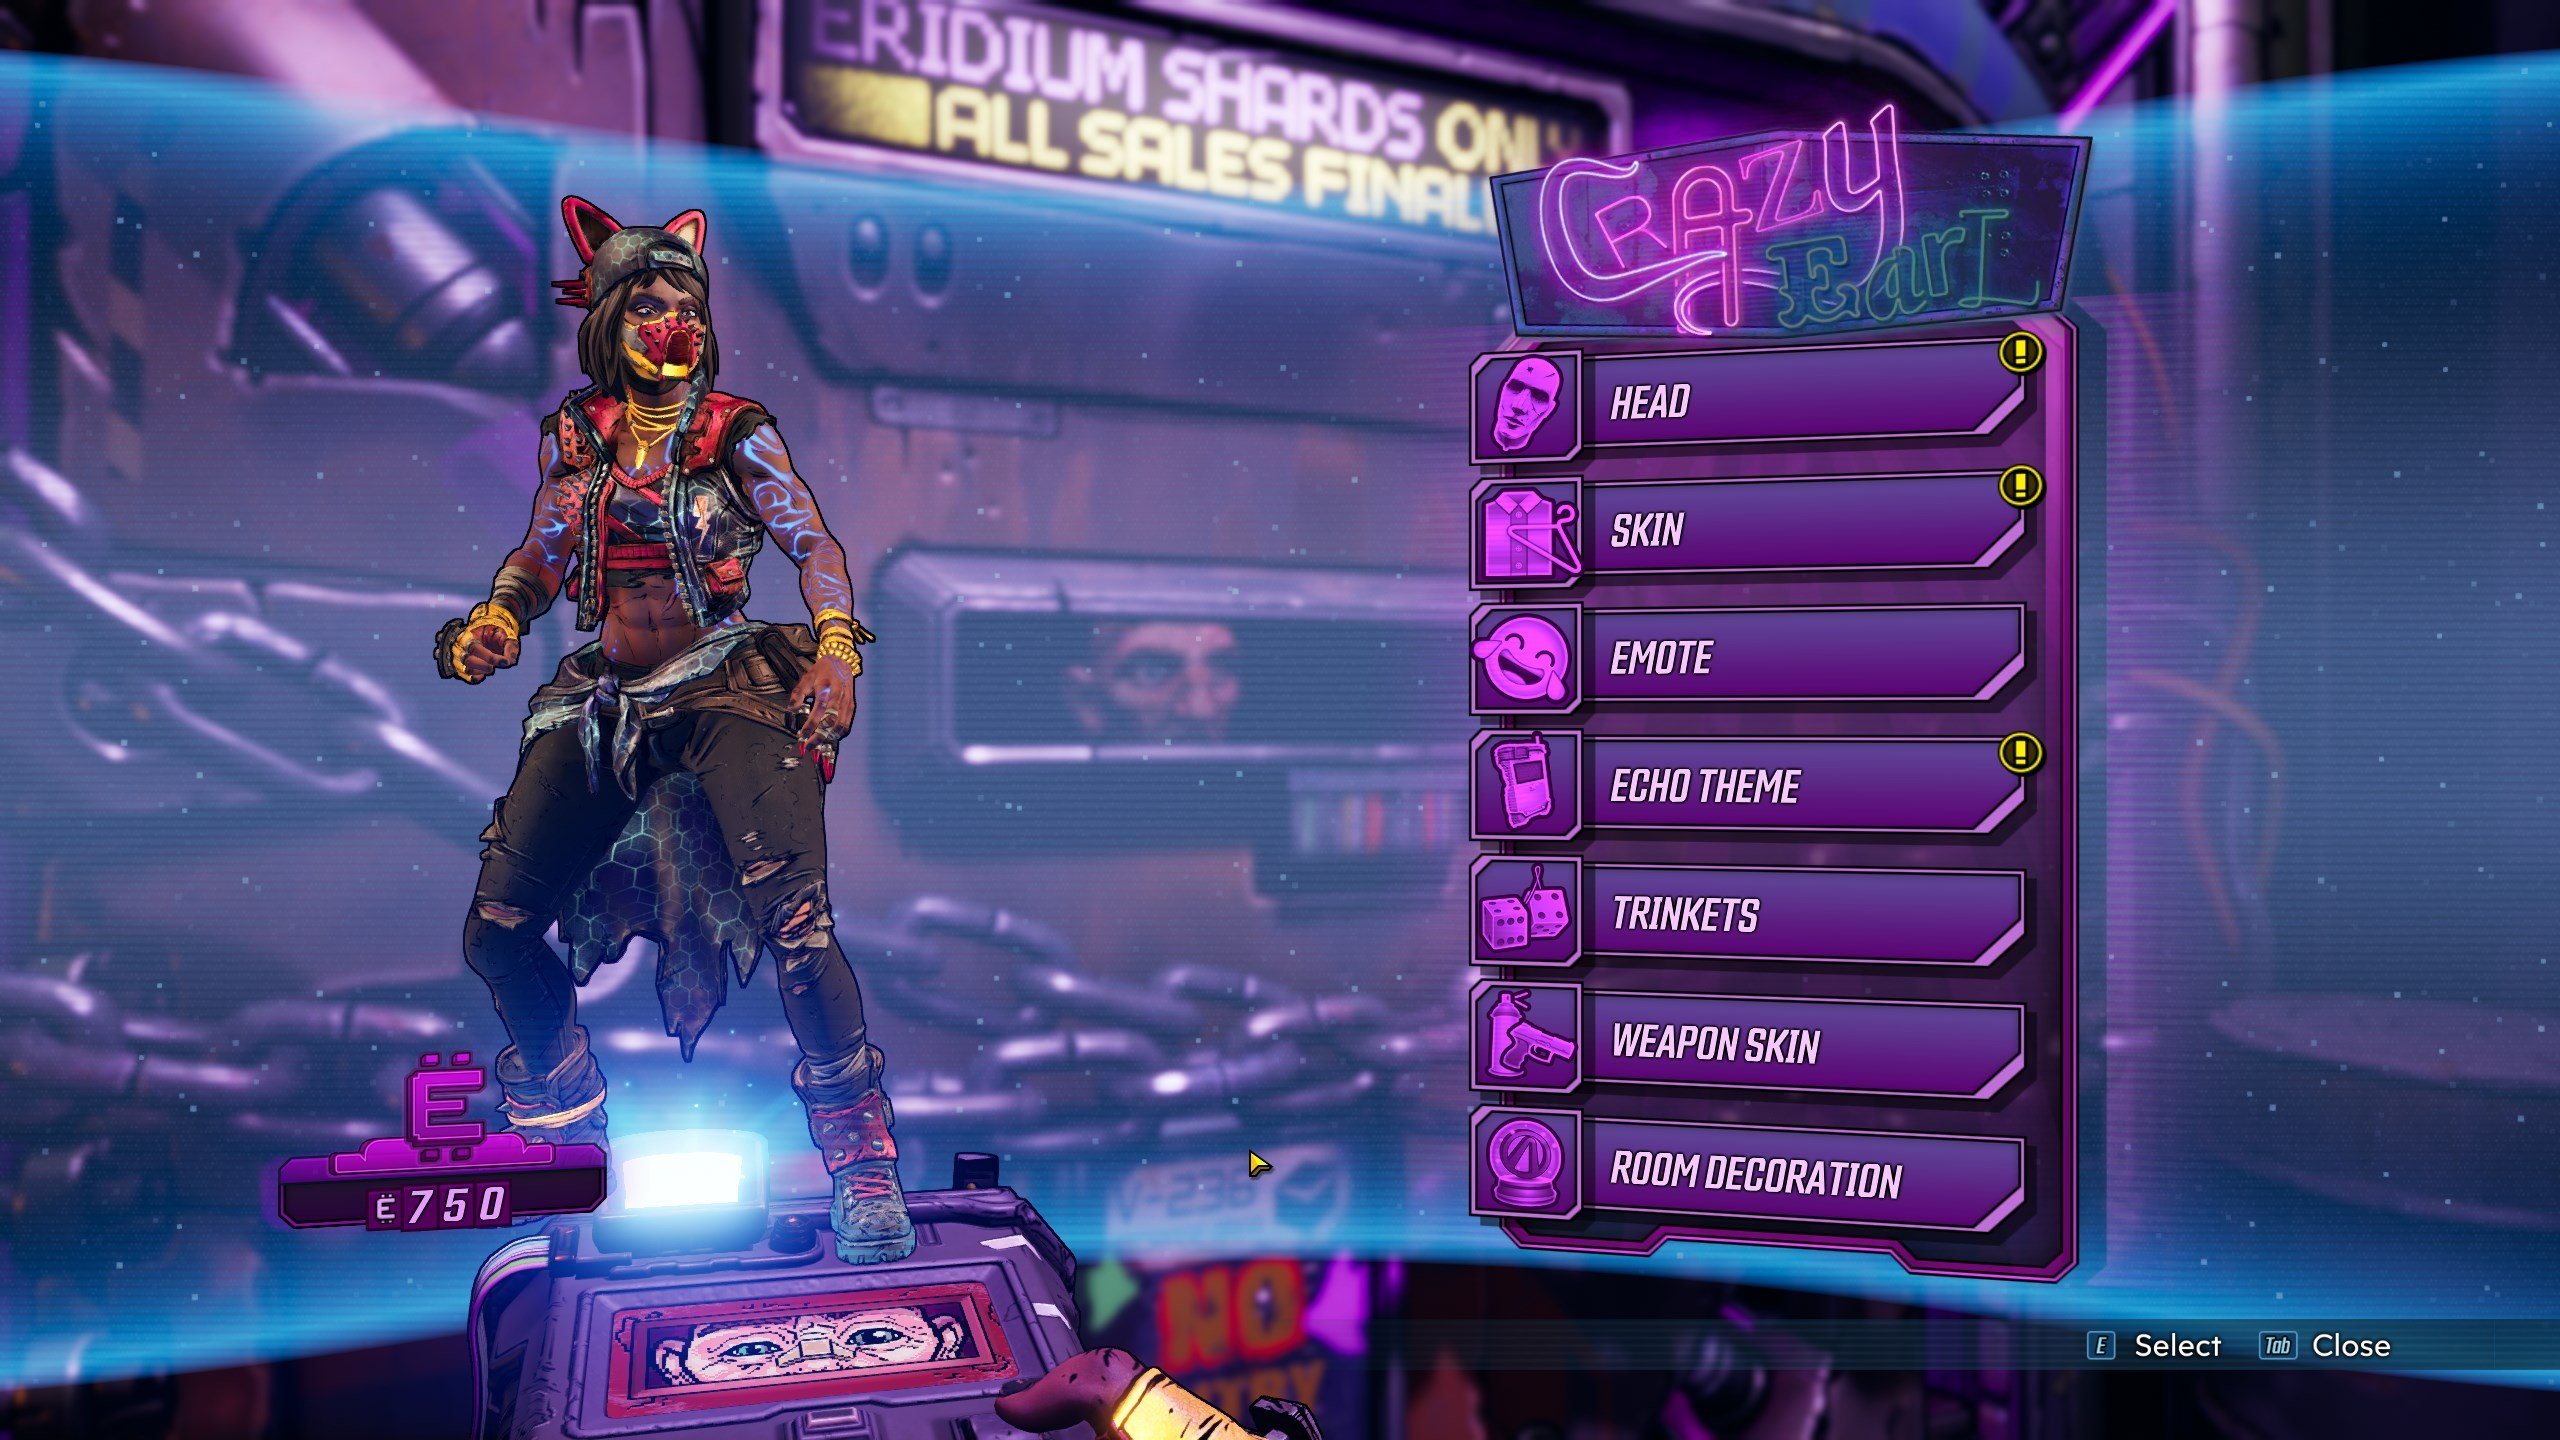 Borderlands 3 - Show me the Eridium event